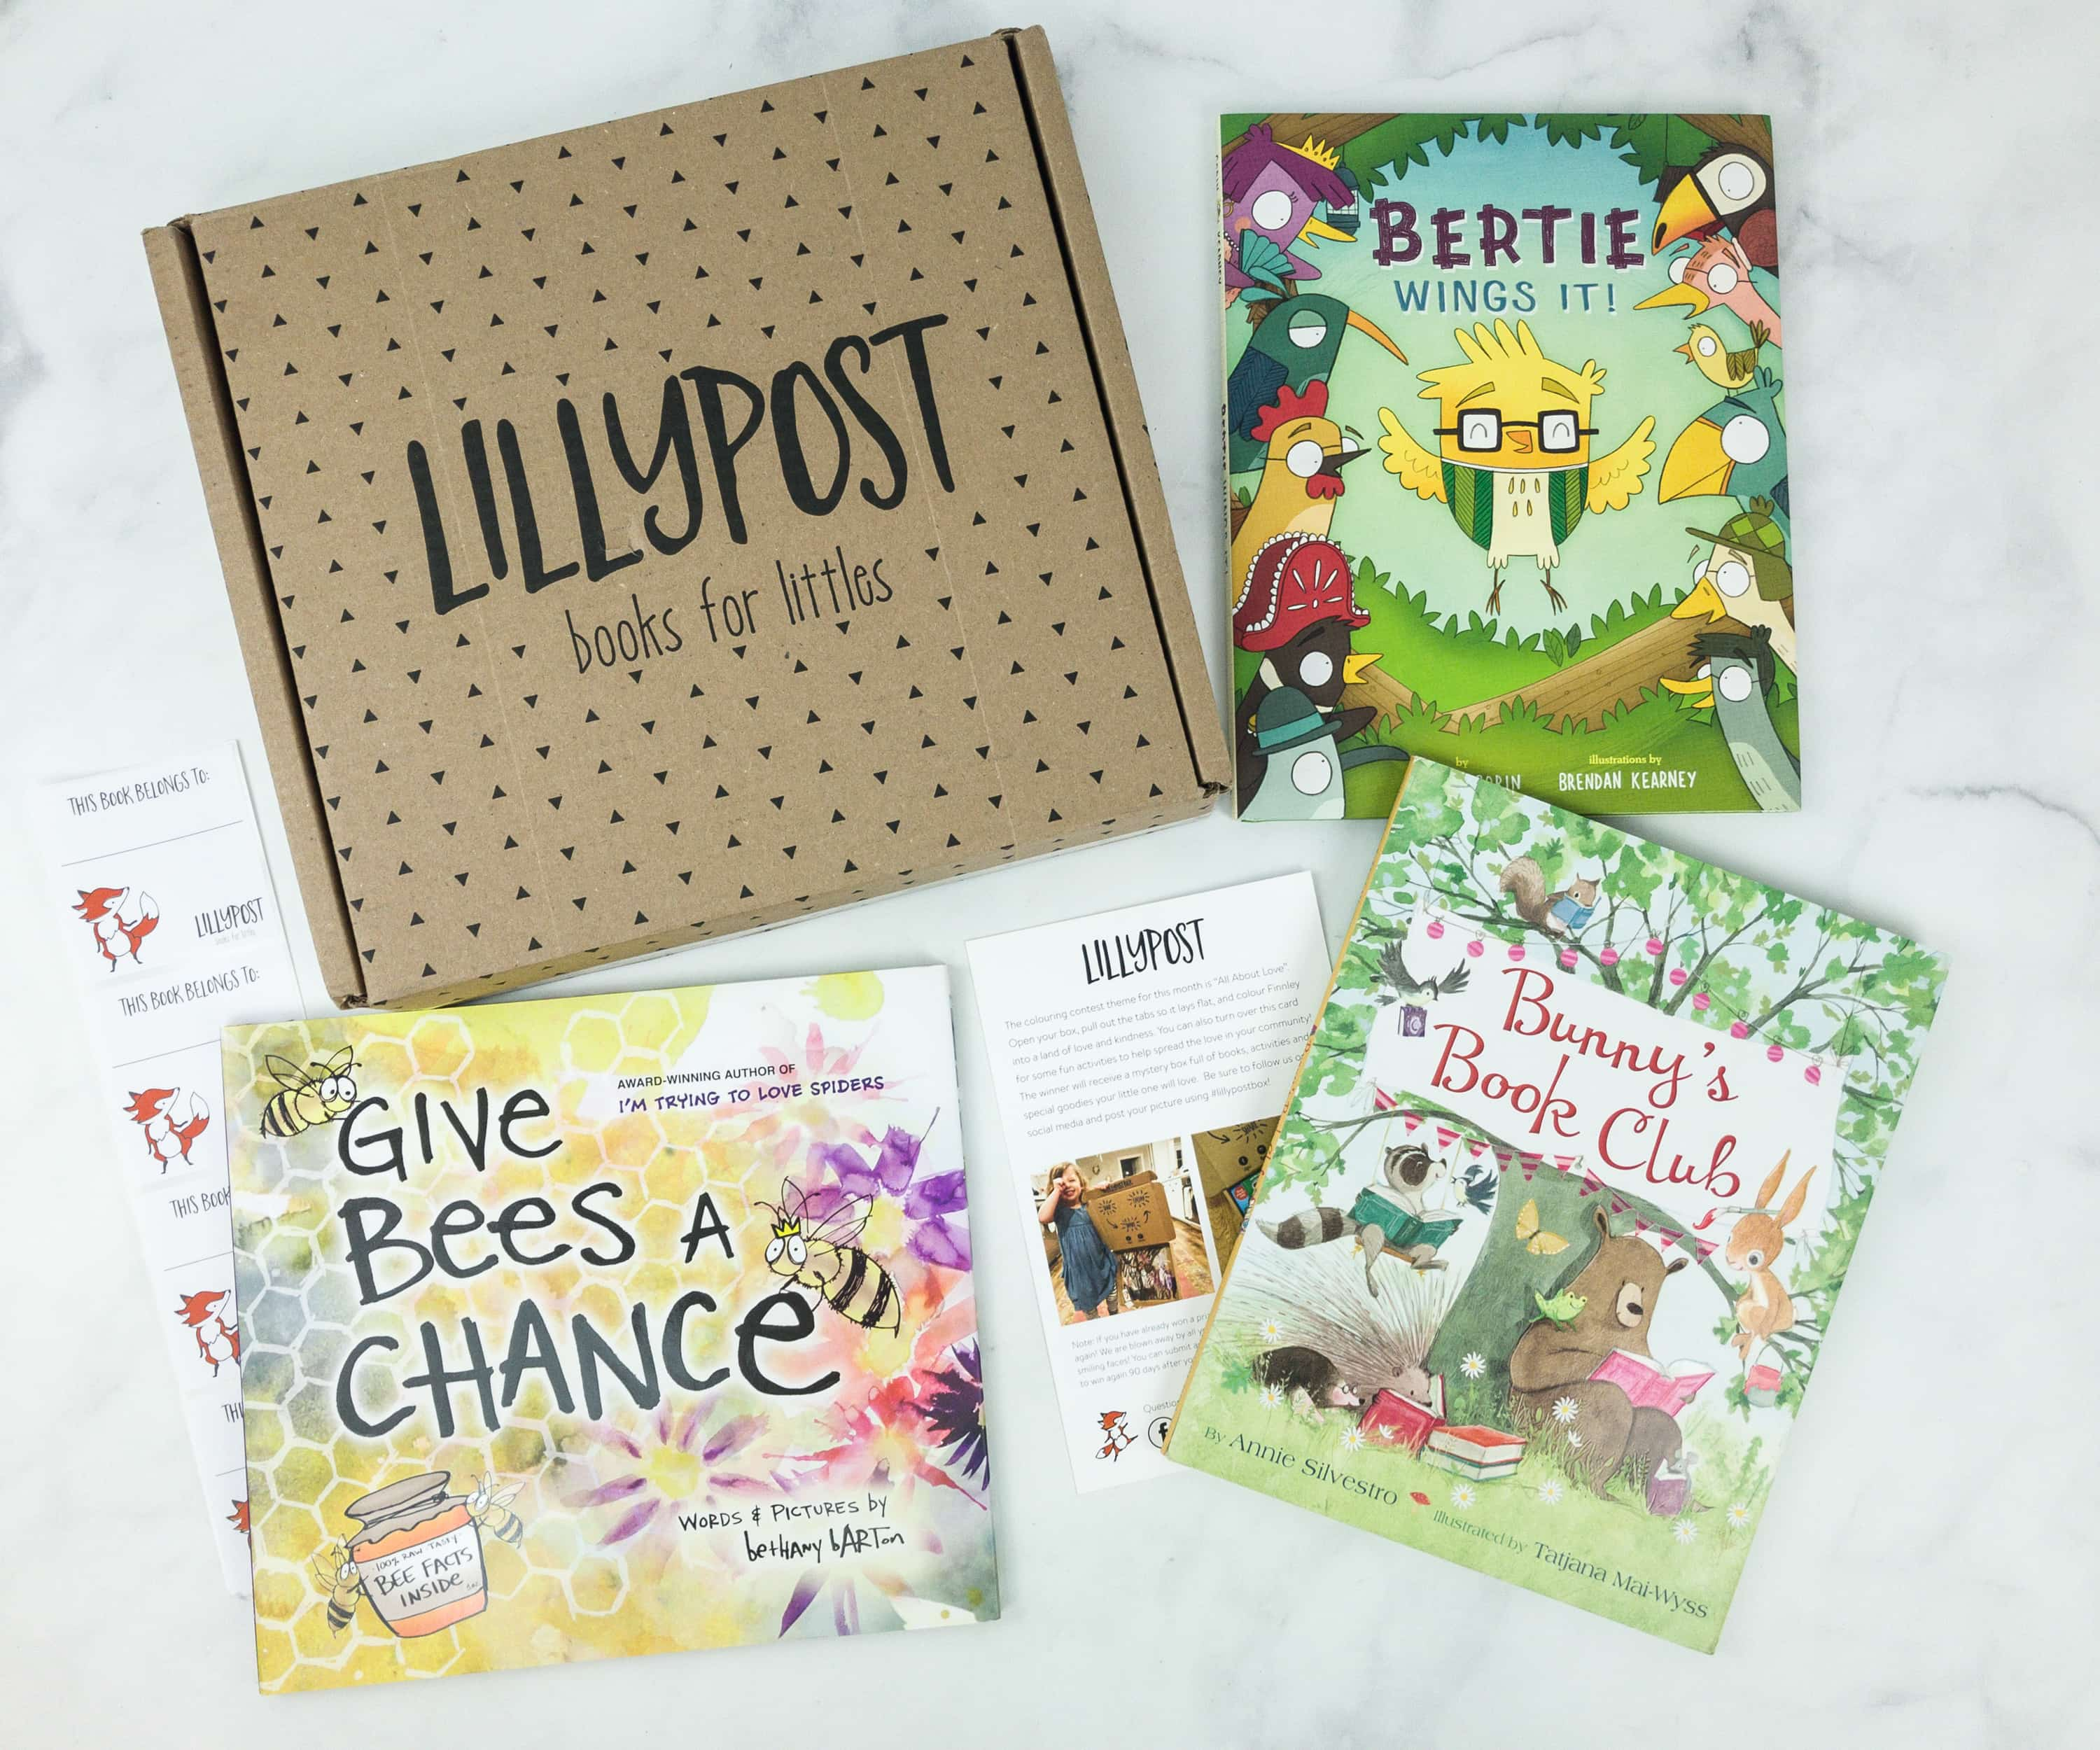 Lillypost February 2019 Board Book Subscription Box Review – PICTURE BOOKS